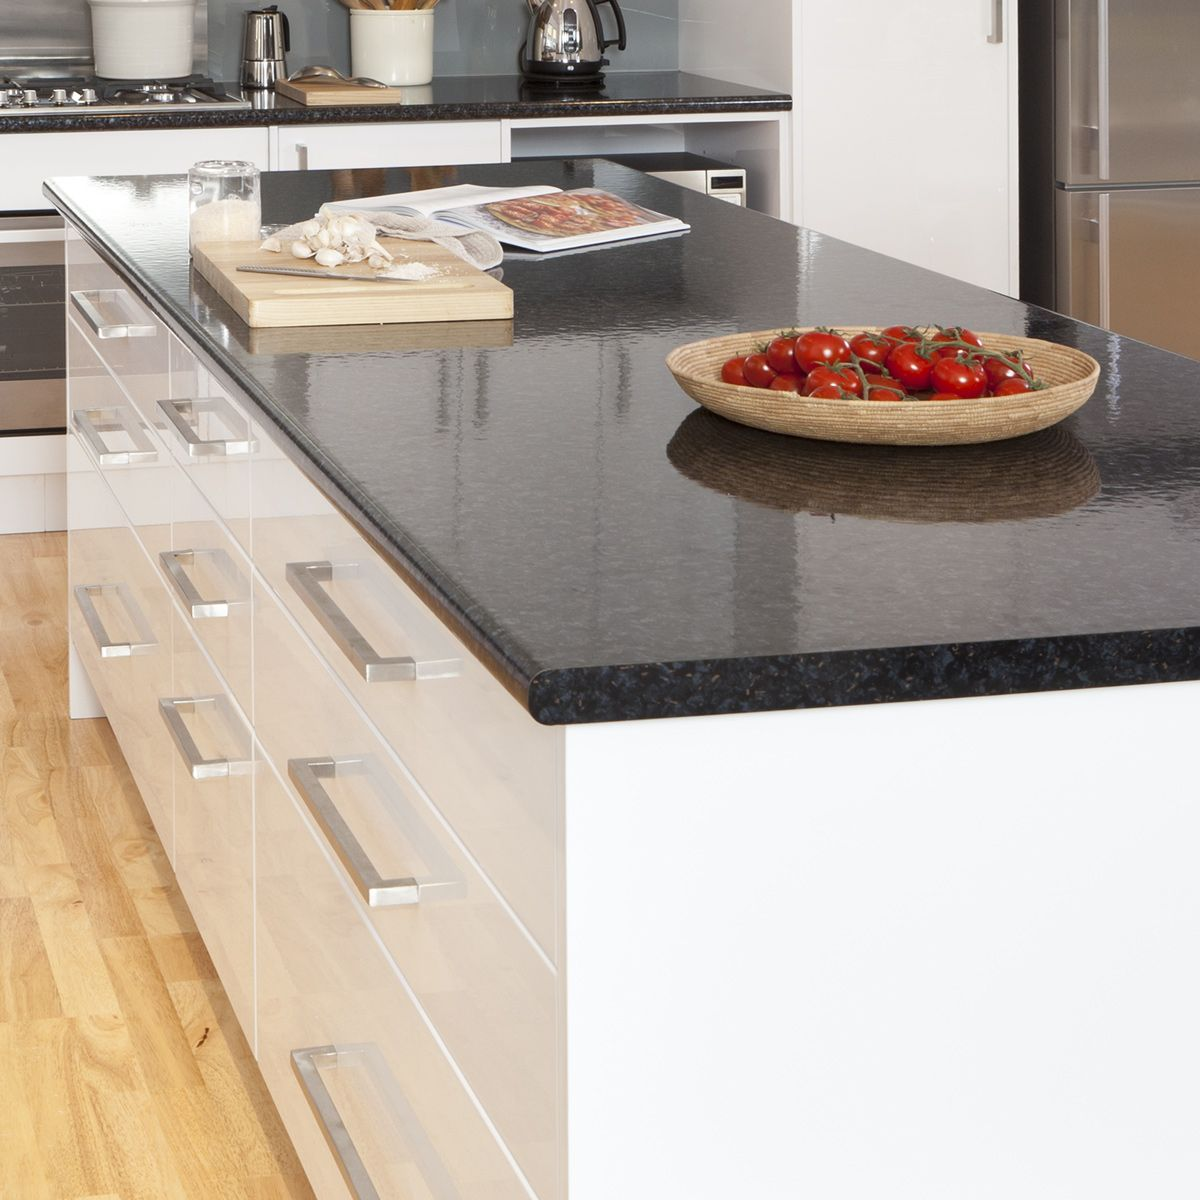 Kaboodle Kitchen: Base Cabinets, Drawers And Kitchens